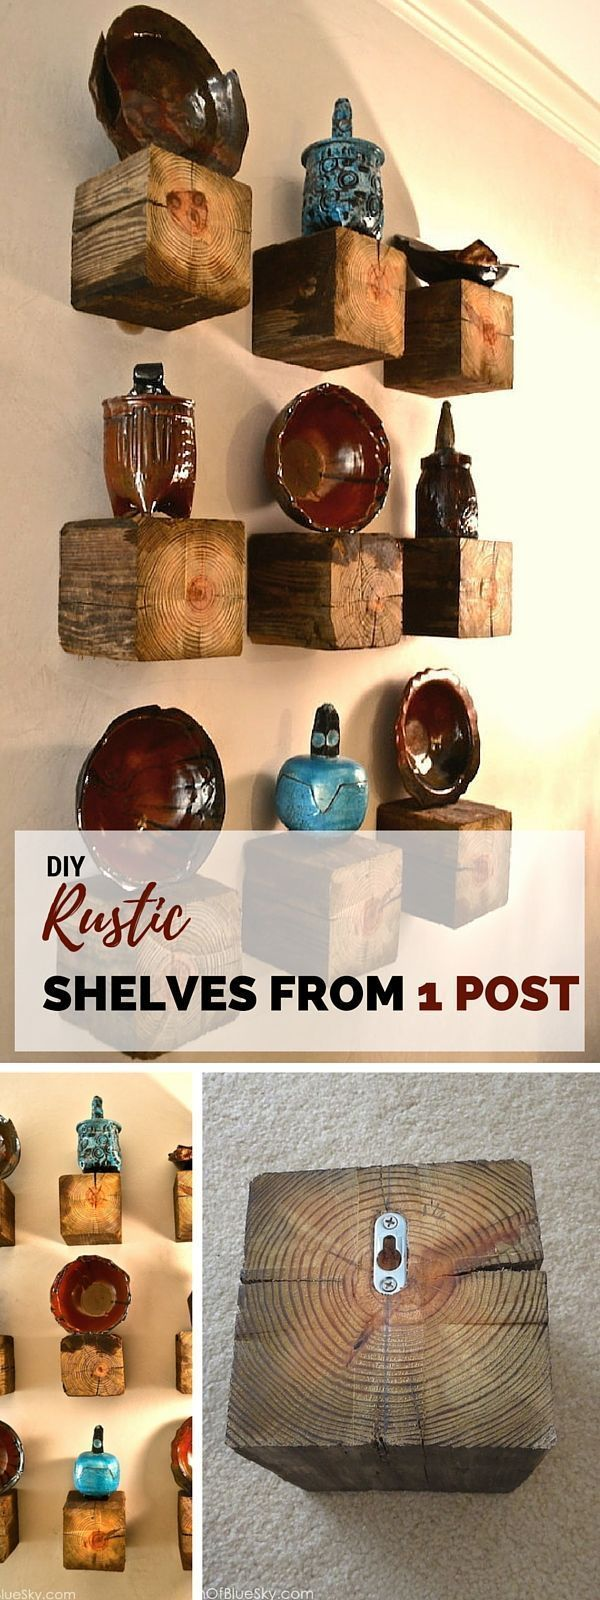 Awesome Nice 20 Rustic Diy And Handcrafted Accents To Bring Warmth To Your Home Decor